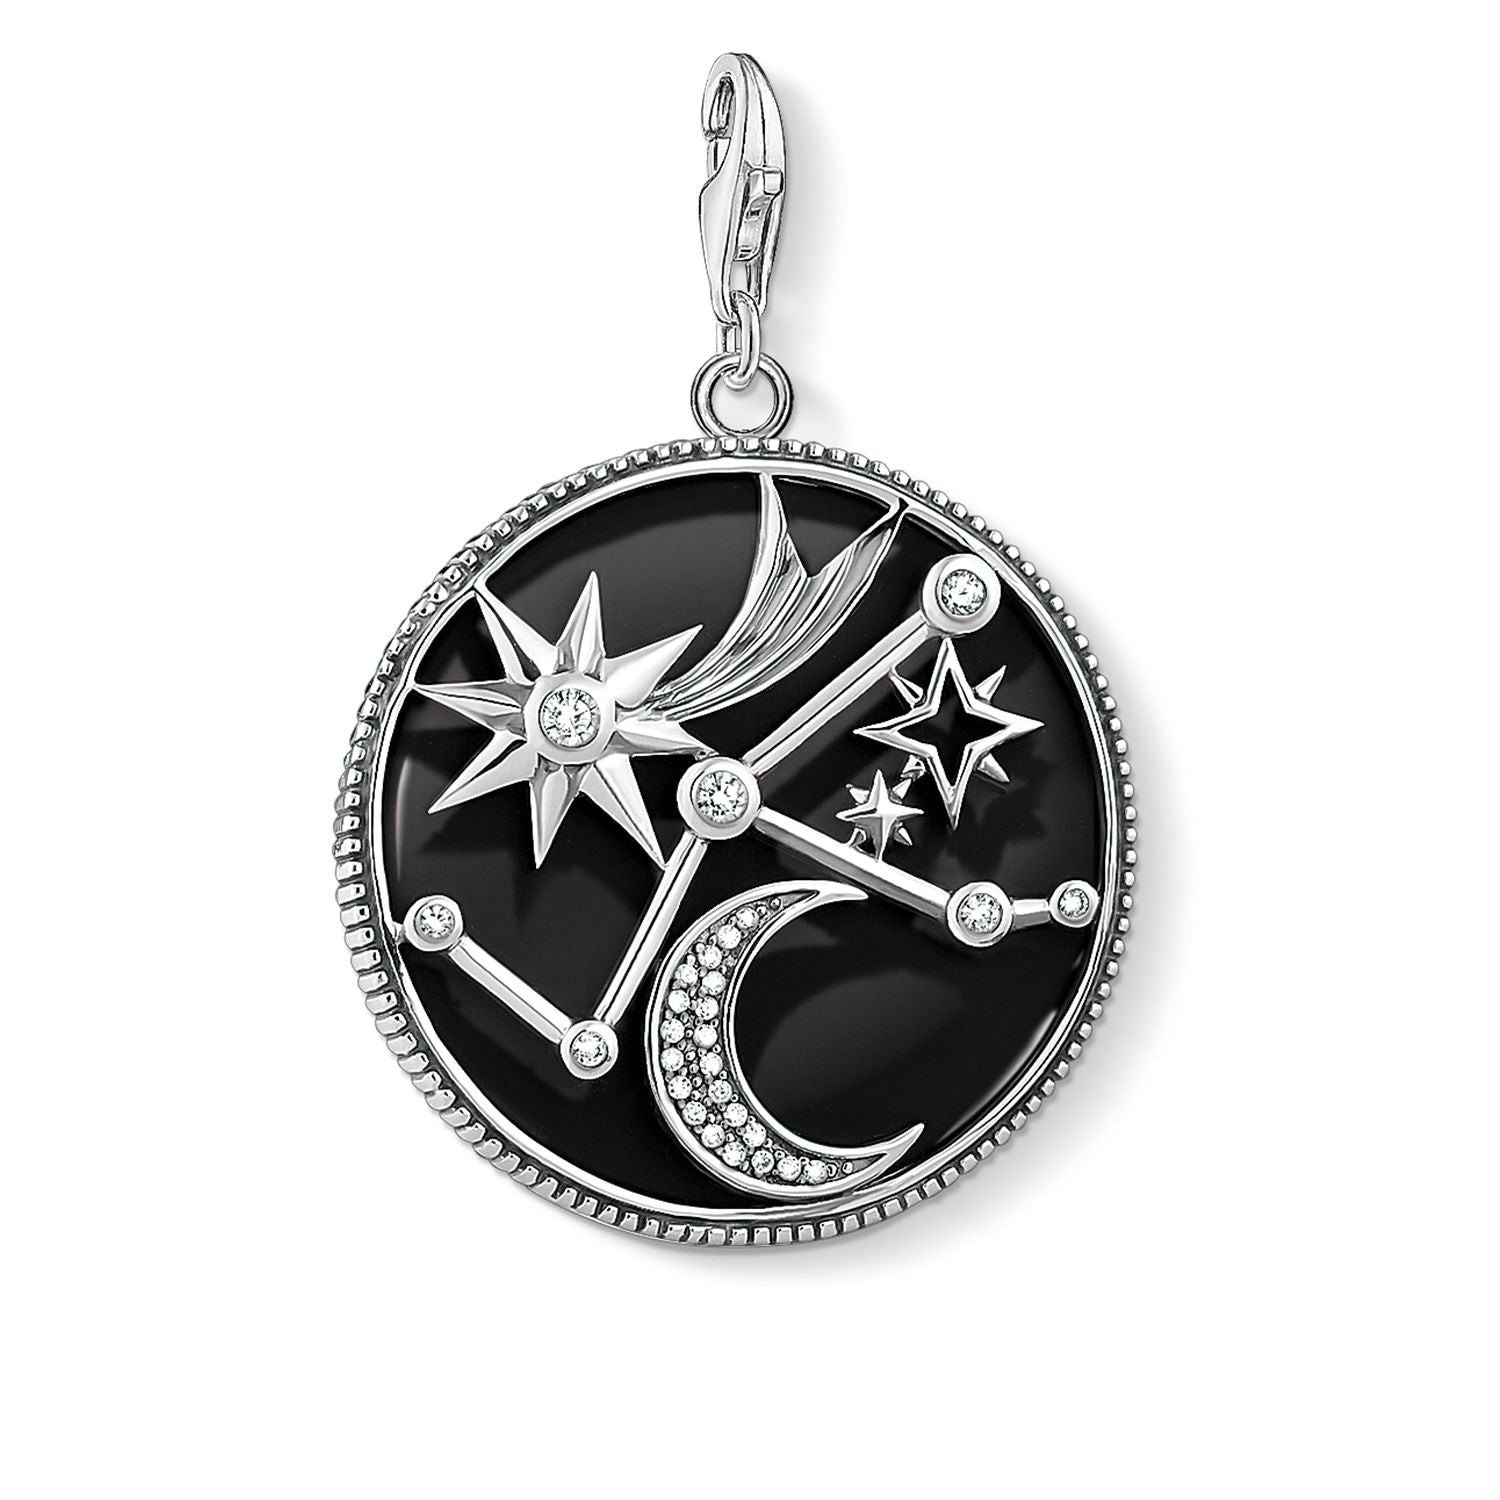 Thomas Sabo Charm Club Astro Disc Y0050-641-18